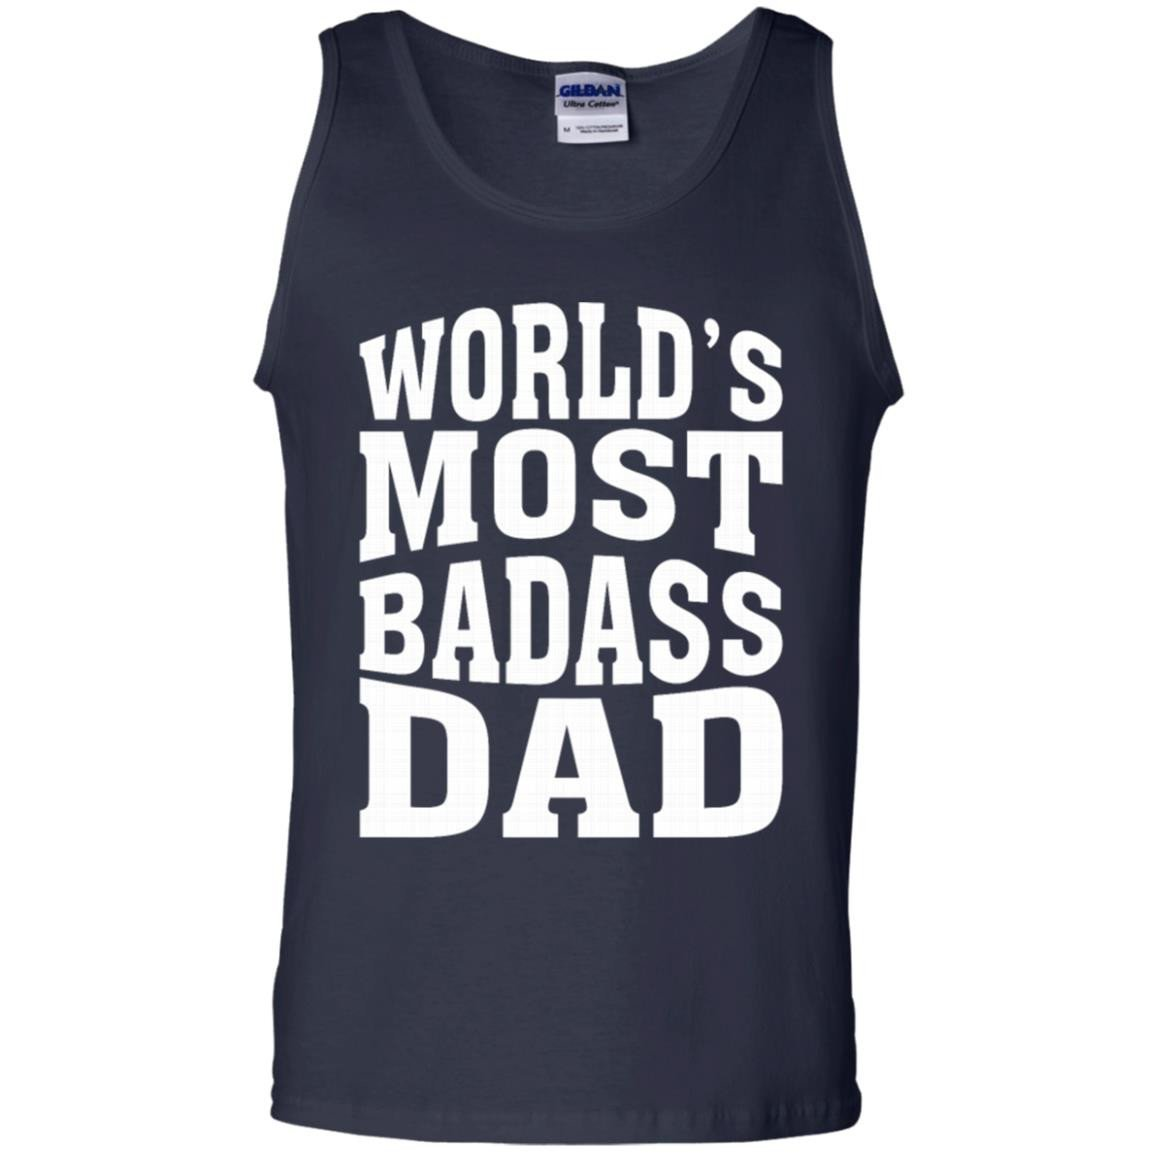 9772679c World S Most Badass Dad T-Shirt Tank Top 220 - Alottee